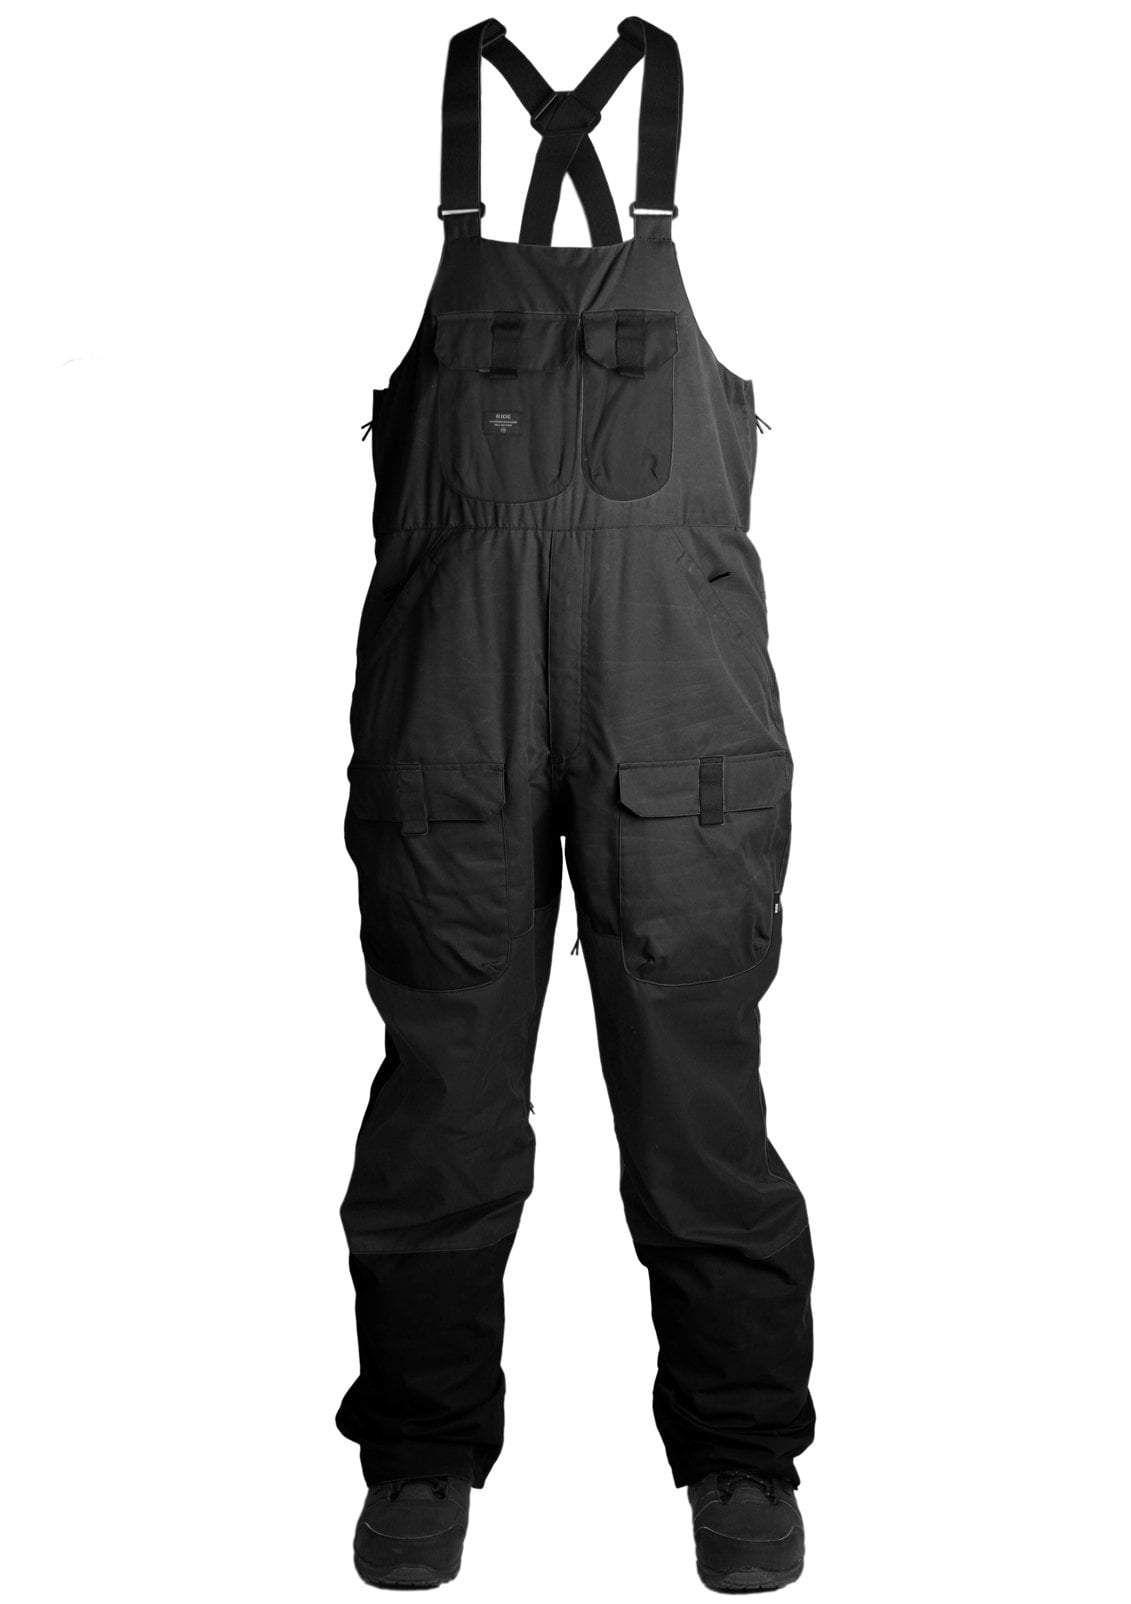 Ride Central Bib Pants